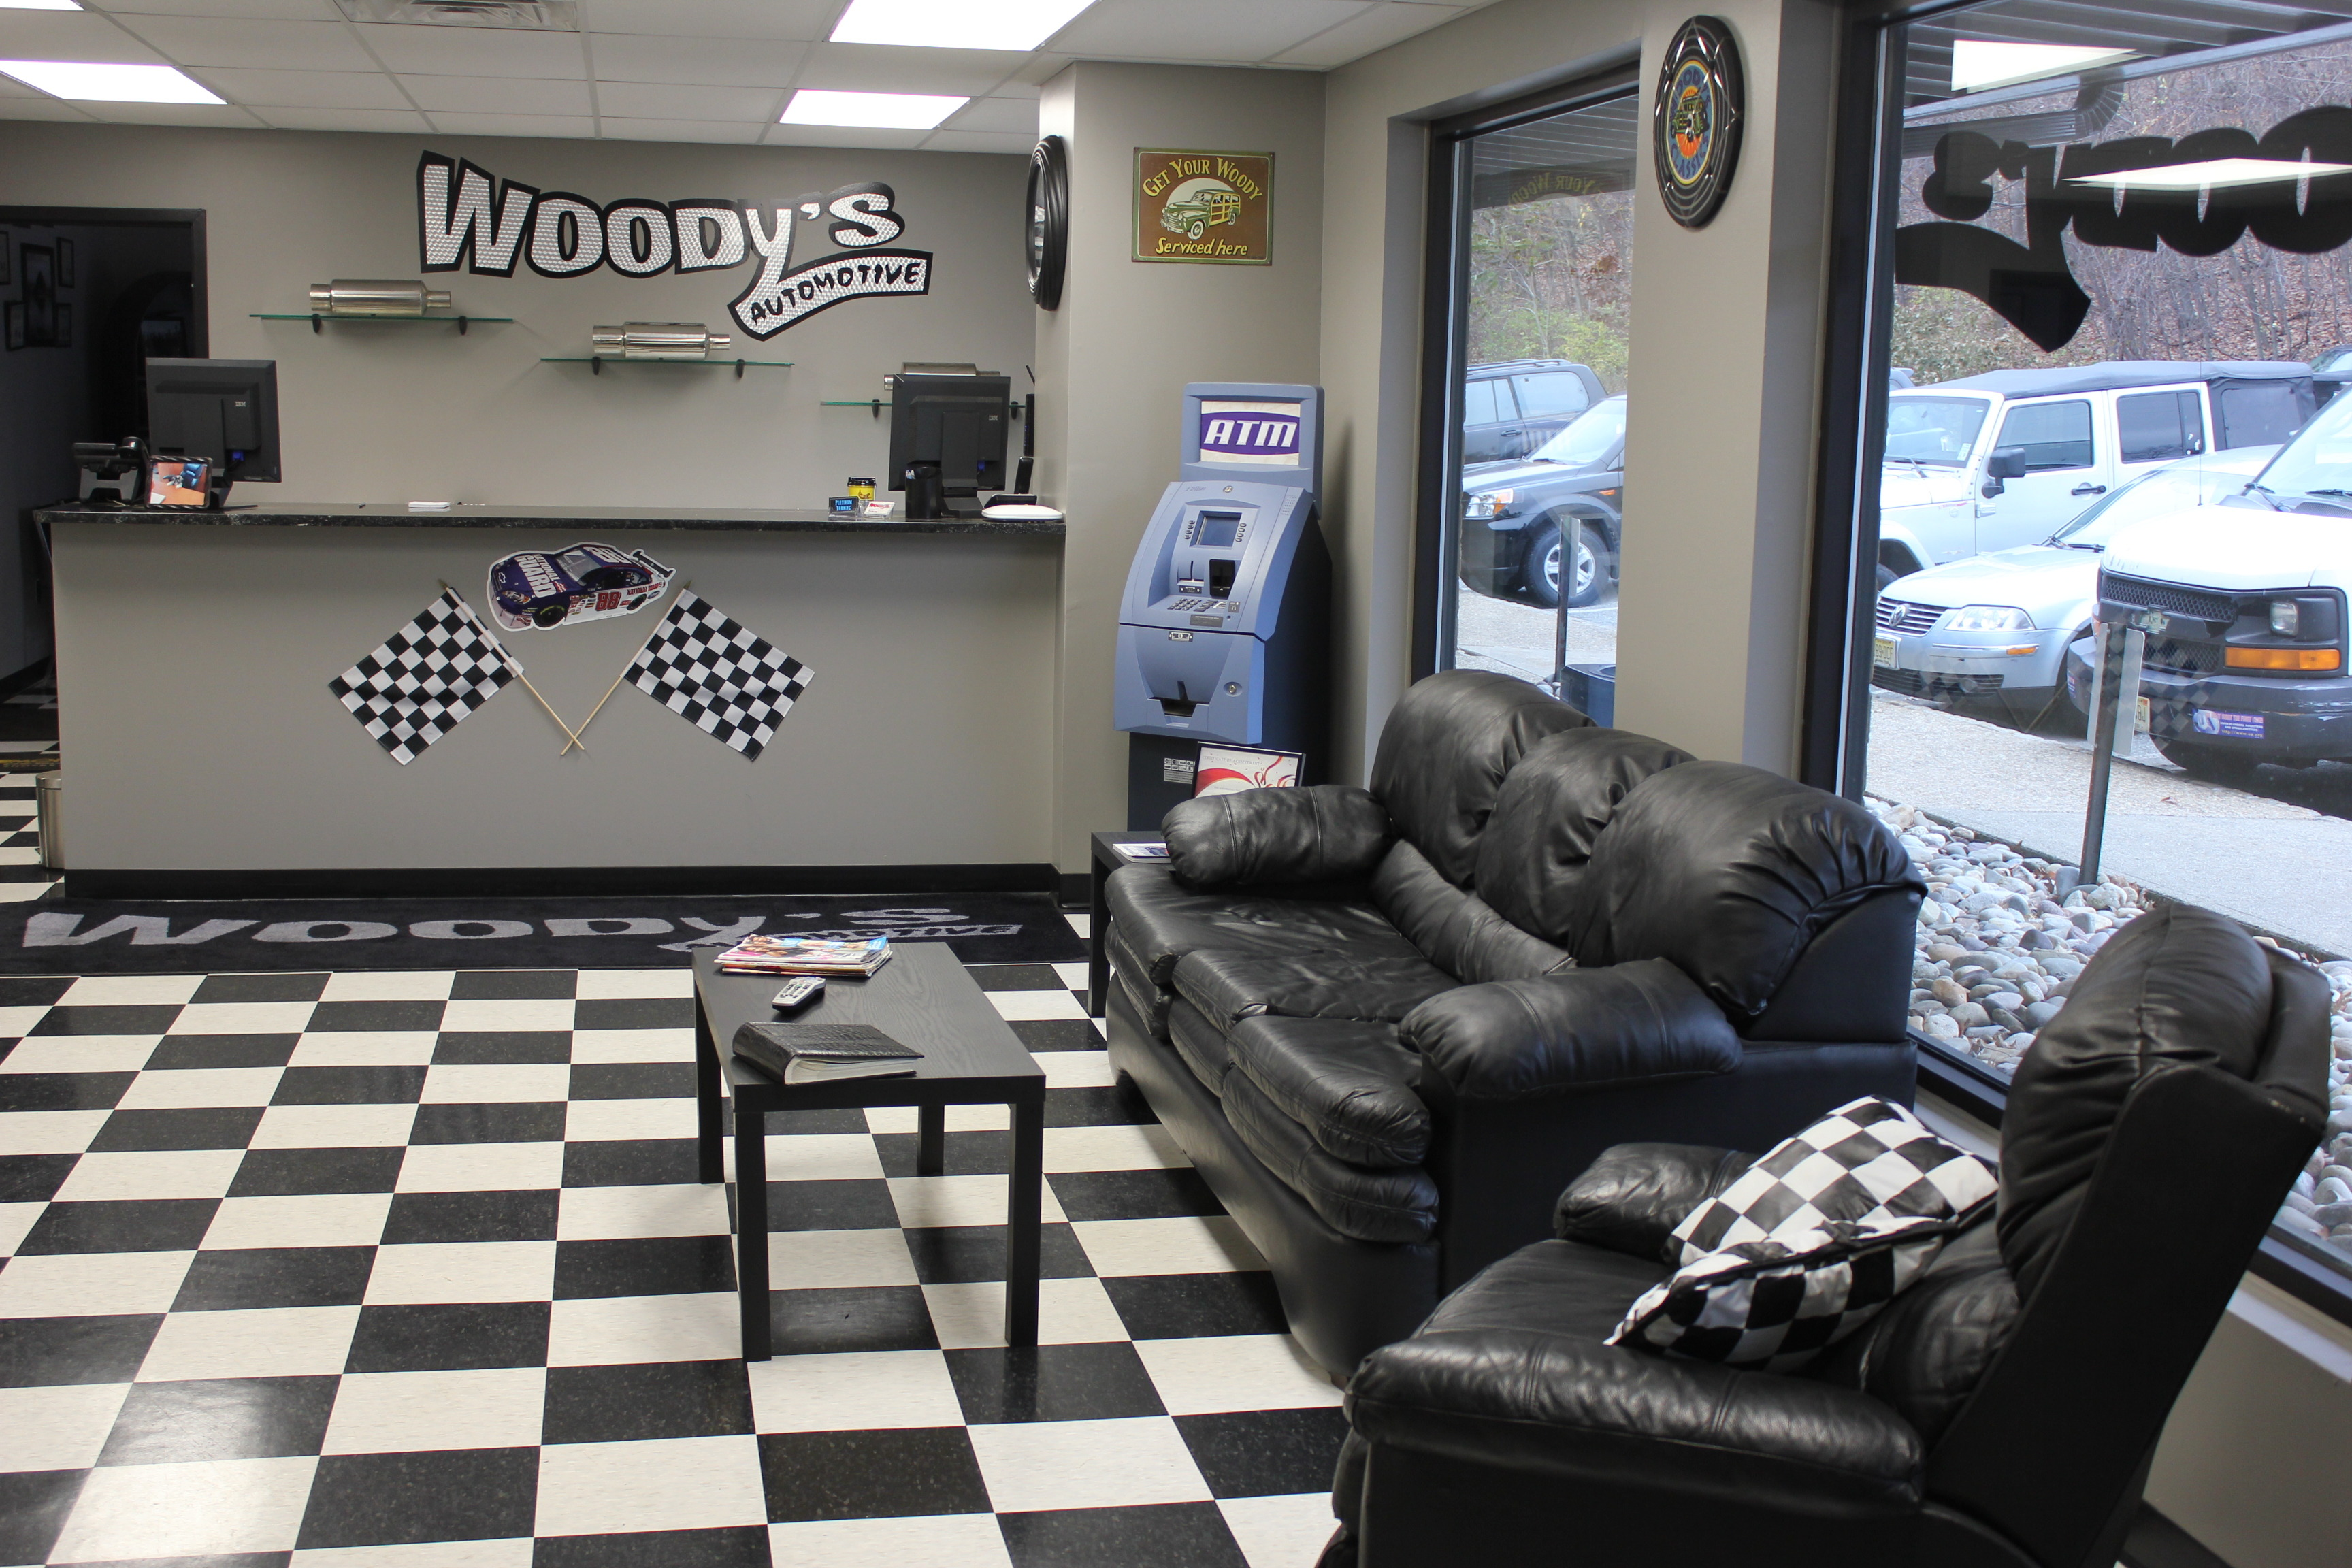 Woody's Automotive; New Auto Repair Shop Opens in Randolph - Randolph NJ  News - TAPinto